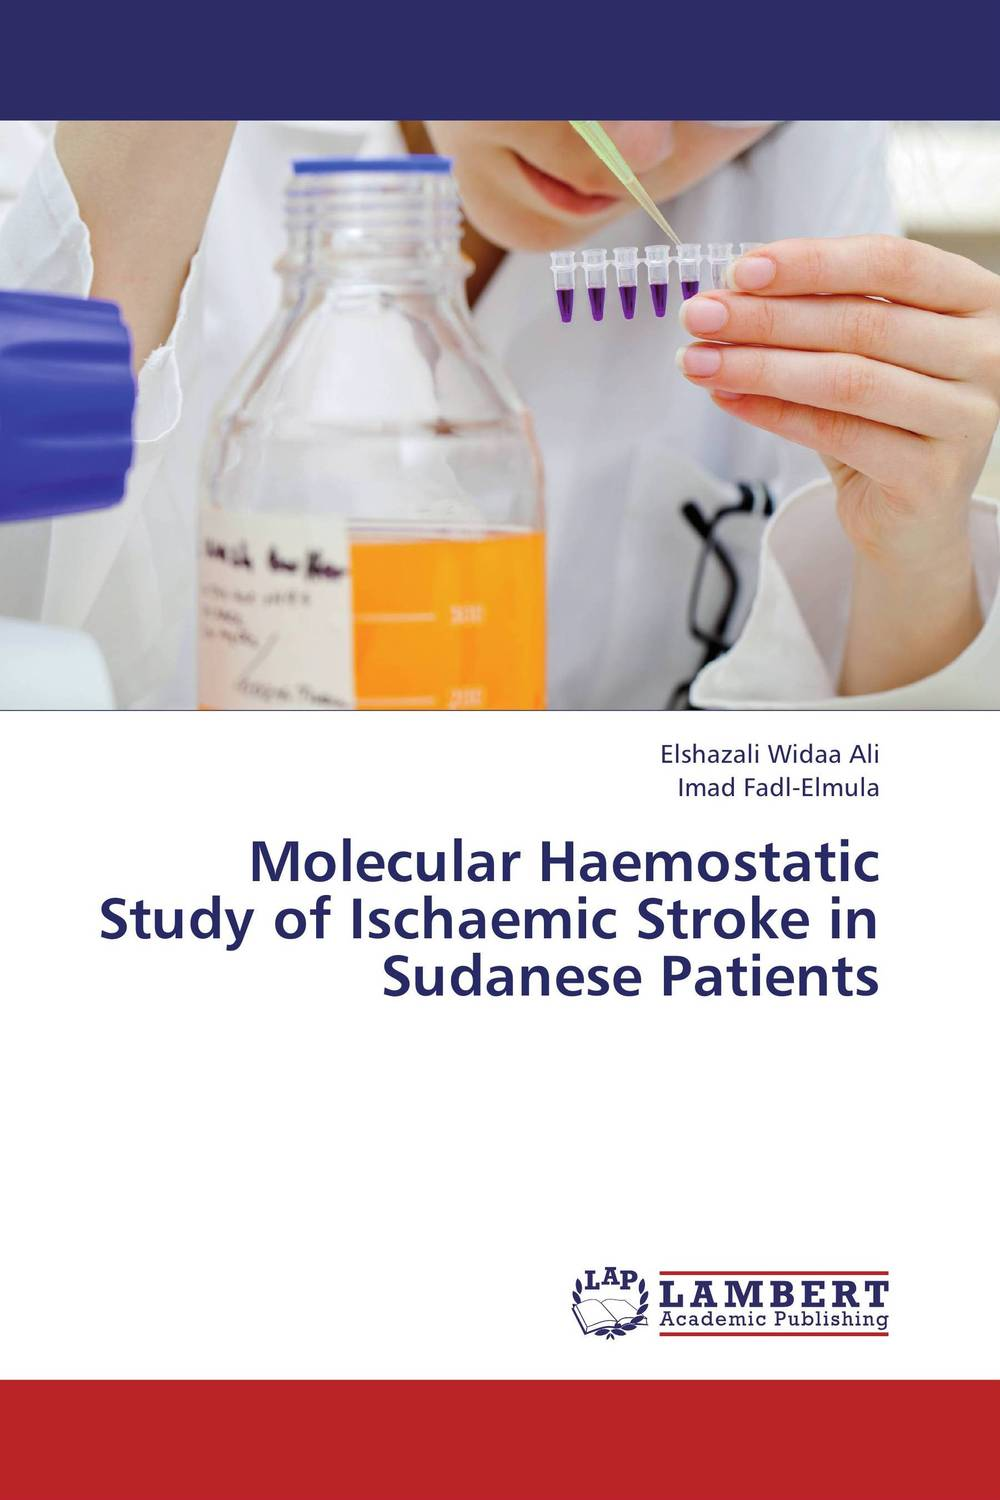 Molecular Haemostatic Study of Ischaemic Stroke in Sudanese Patients purnima sareen sundeep kumar and rakesh singh molecular and pathological characterization of slow rusting in wheat